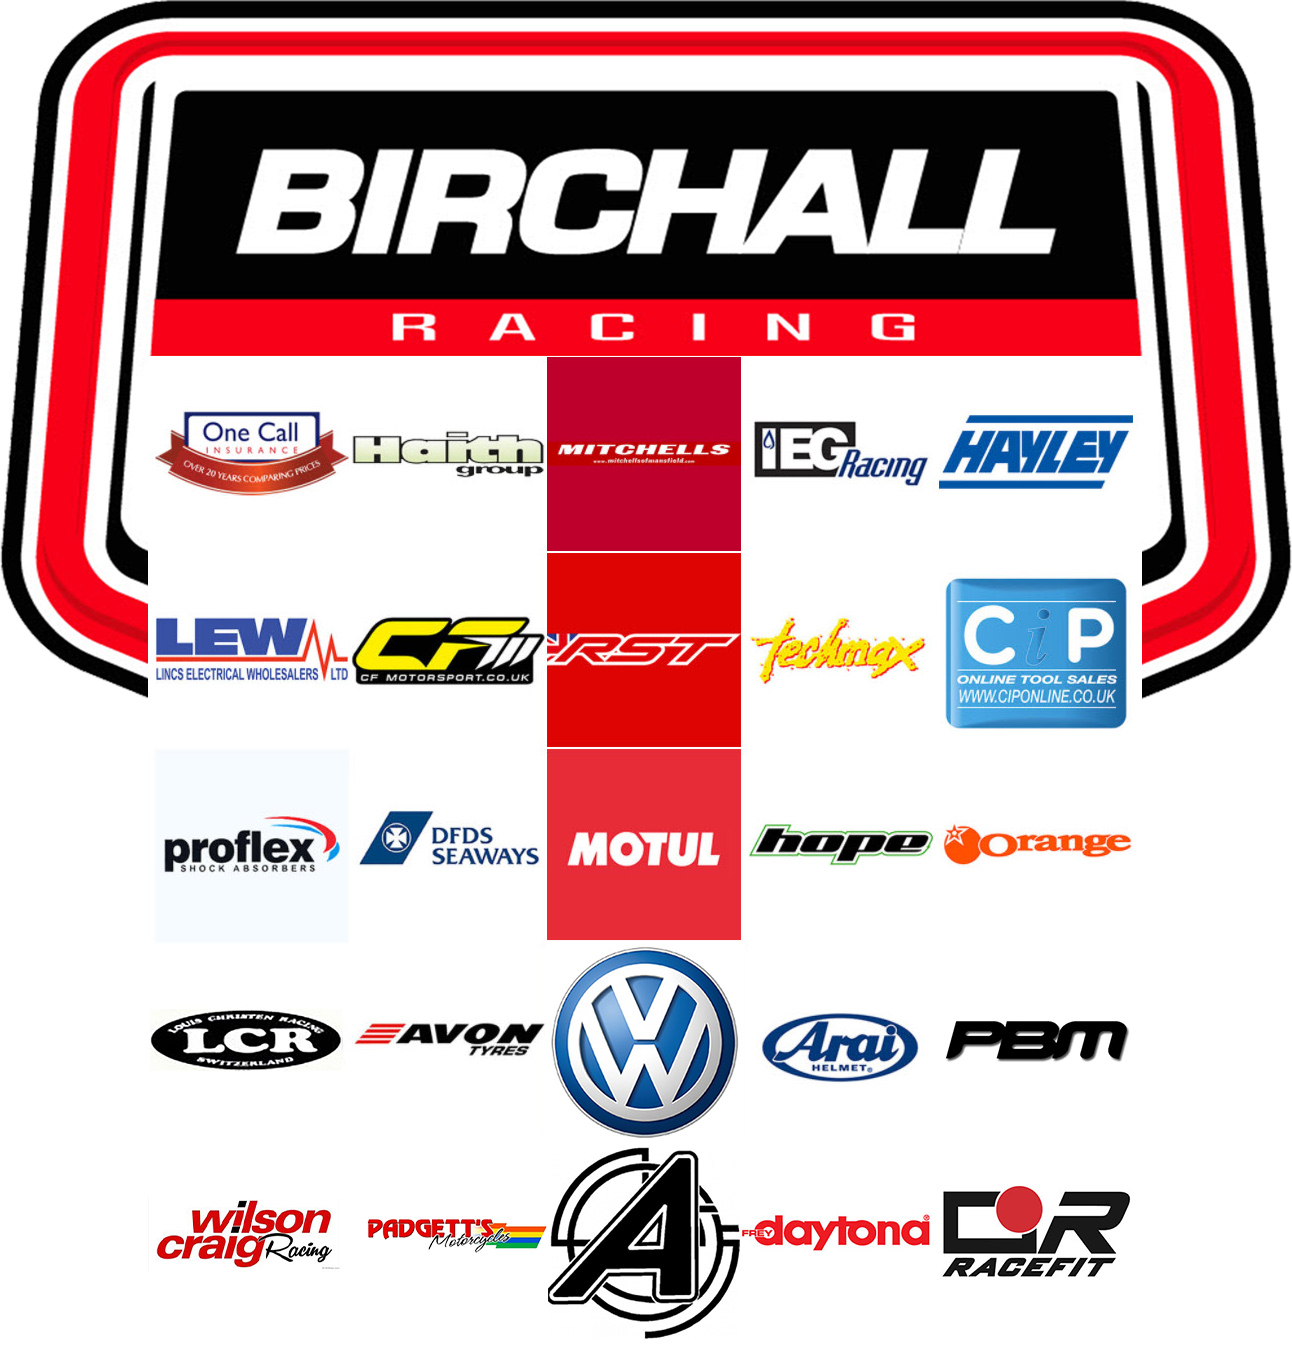 Birchall Racing Take Full Points At Cadwell Park